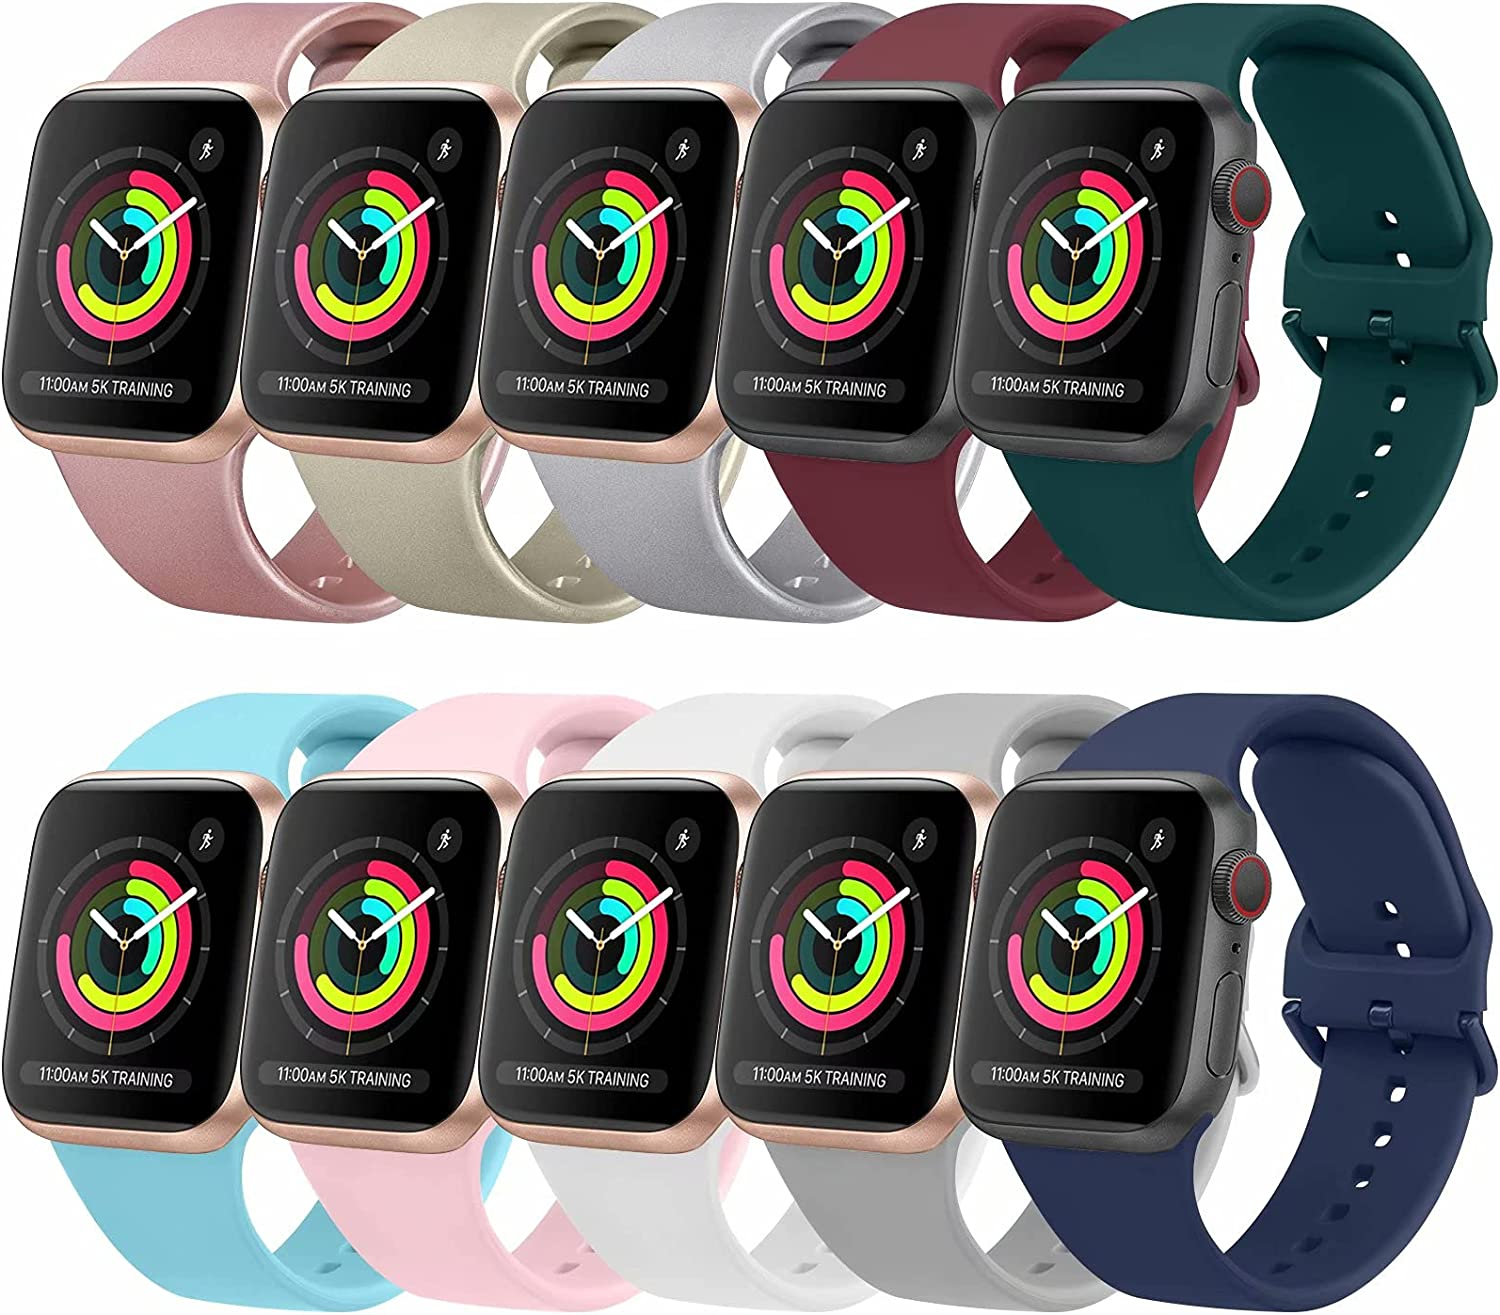 [10 Pack] Bands Compatible with Apple Watch Bands 44mm 42mm iWatch Series 6 5 4 3 2 1 & SE for Women Men, Soft Silicone Replacement Wristbands with Adjustable Buckle (10 Pack A, Large)